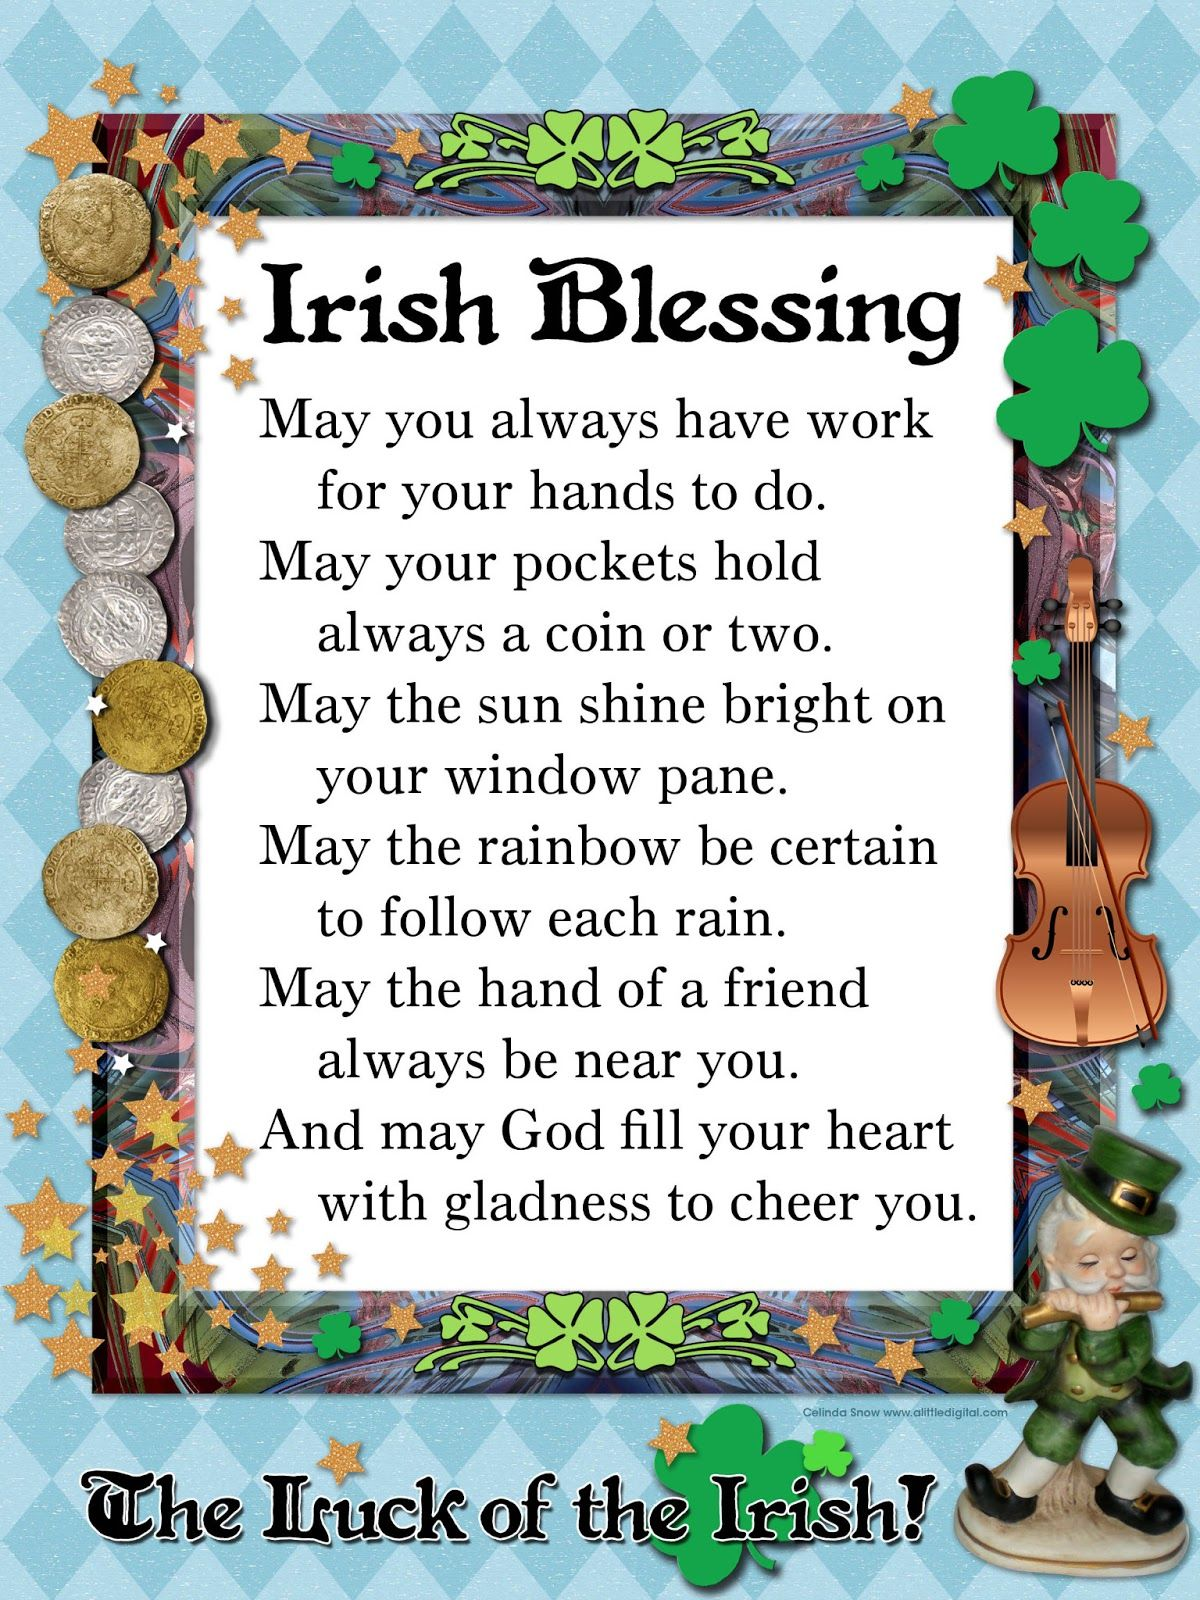 Irish Blessings Quote Pictures, Photos, and Images for Facebook ...